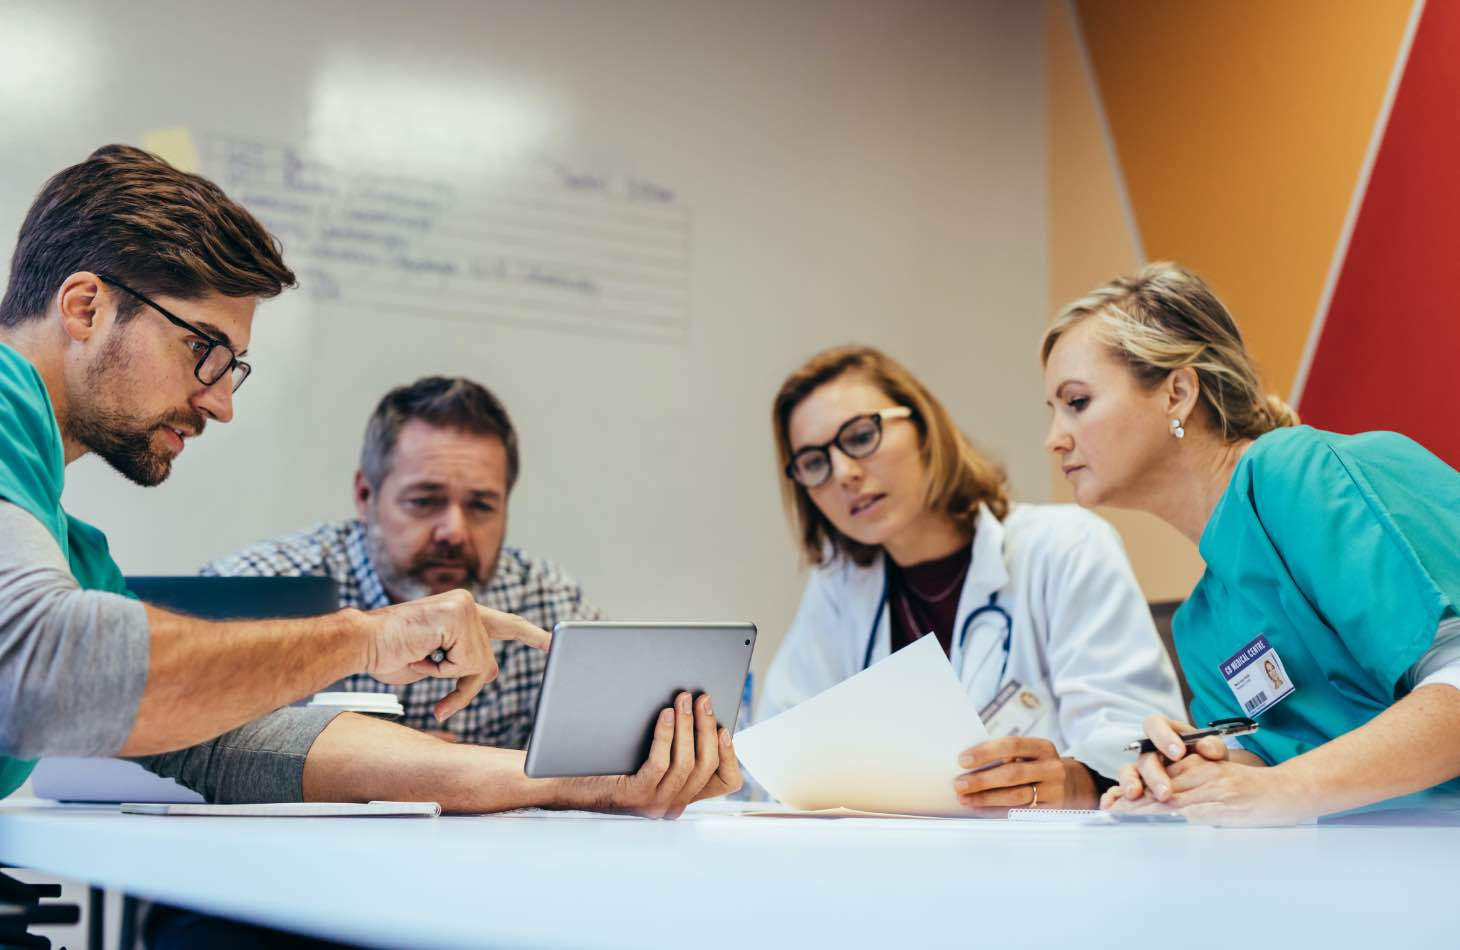 The Hope House Careers Image Of Four Clinicians Developing Personalized Addiction Treatment Plans Together